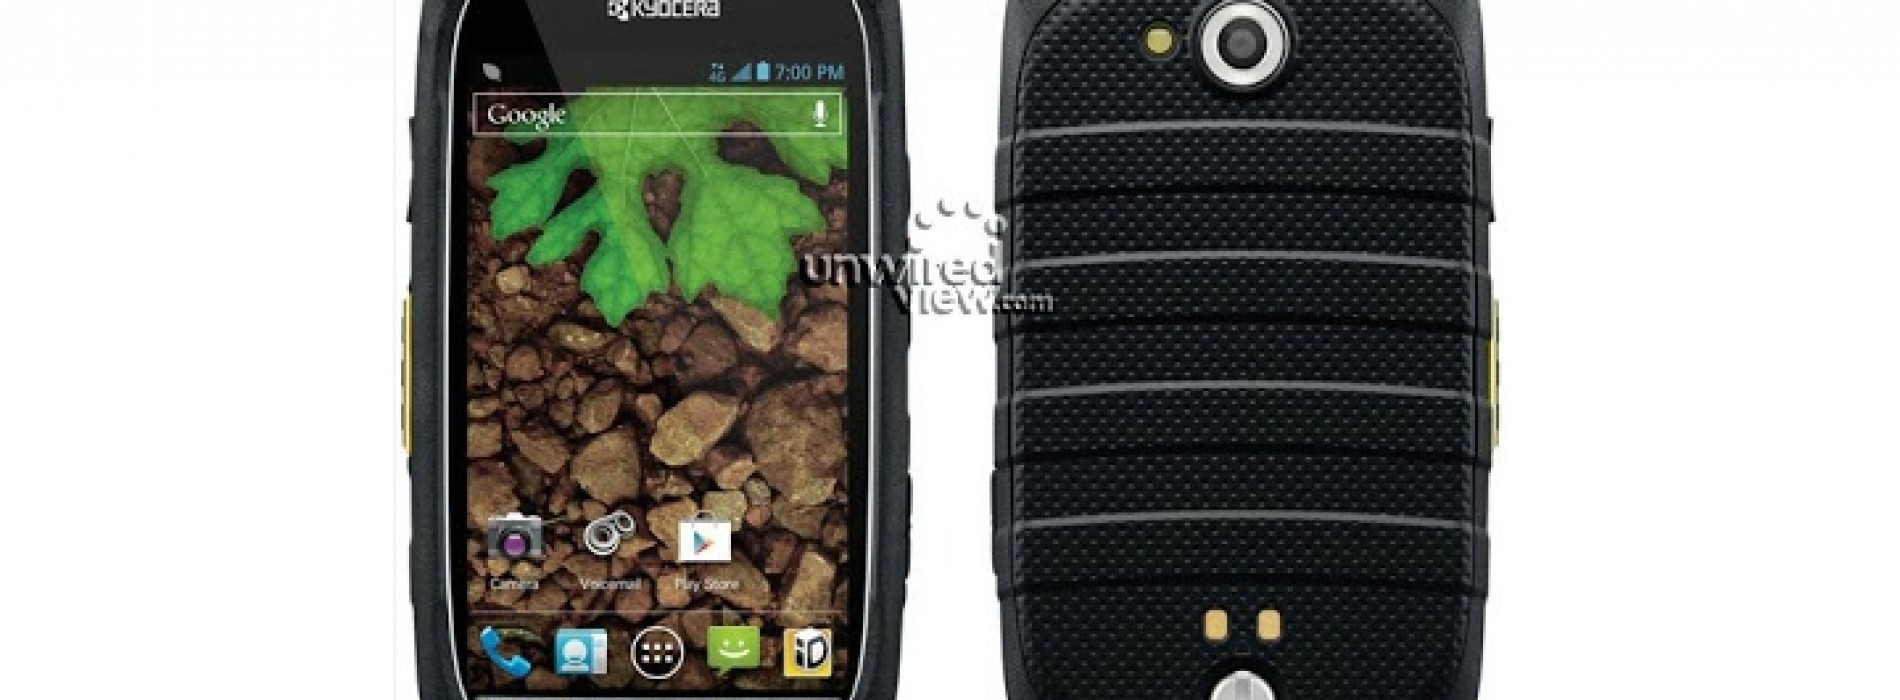 Kyocera E6710 Torque passes through FCC en route to Sprint